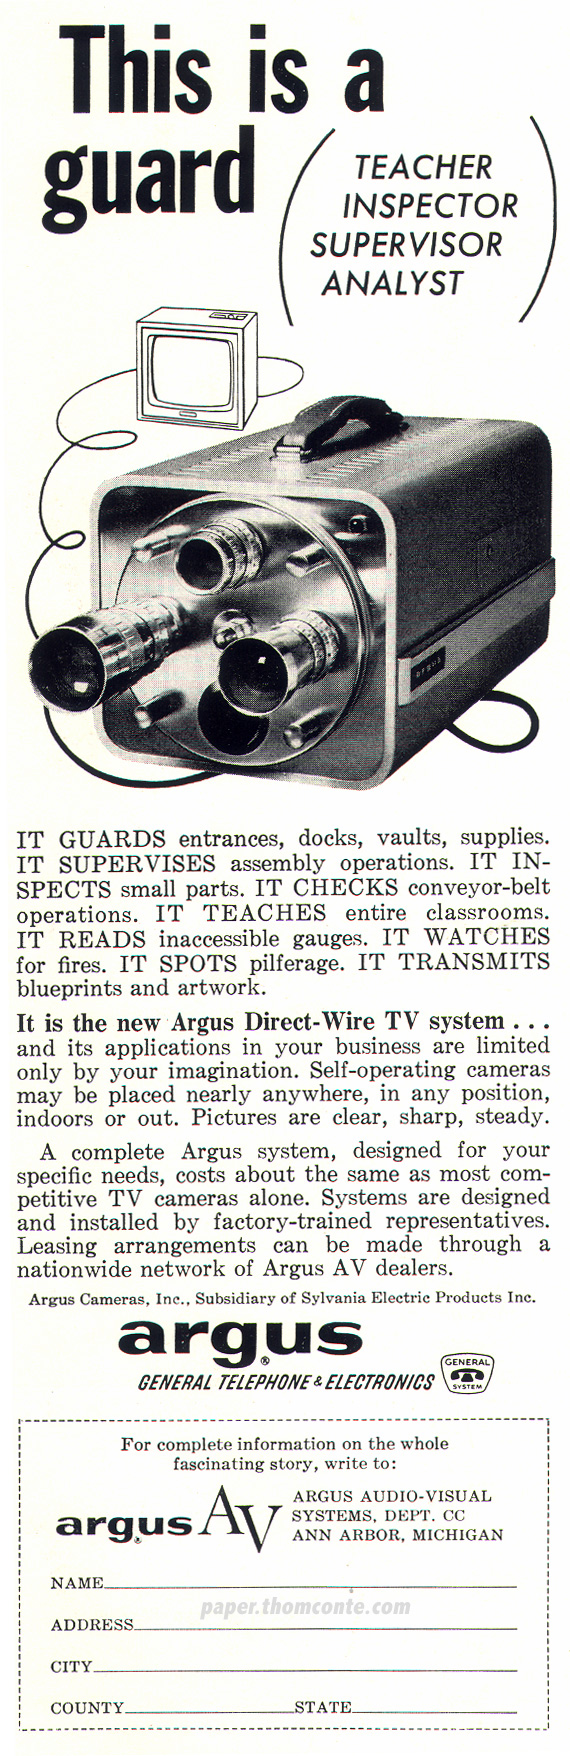 Argus General Telephone & Electronics